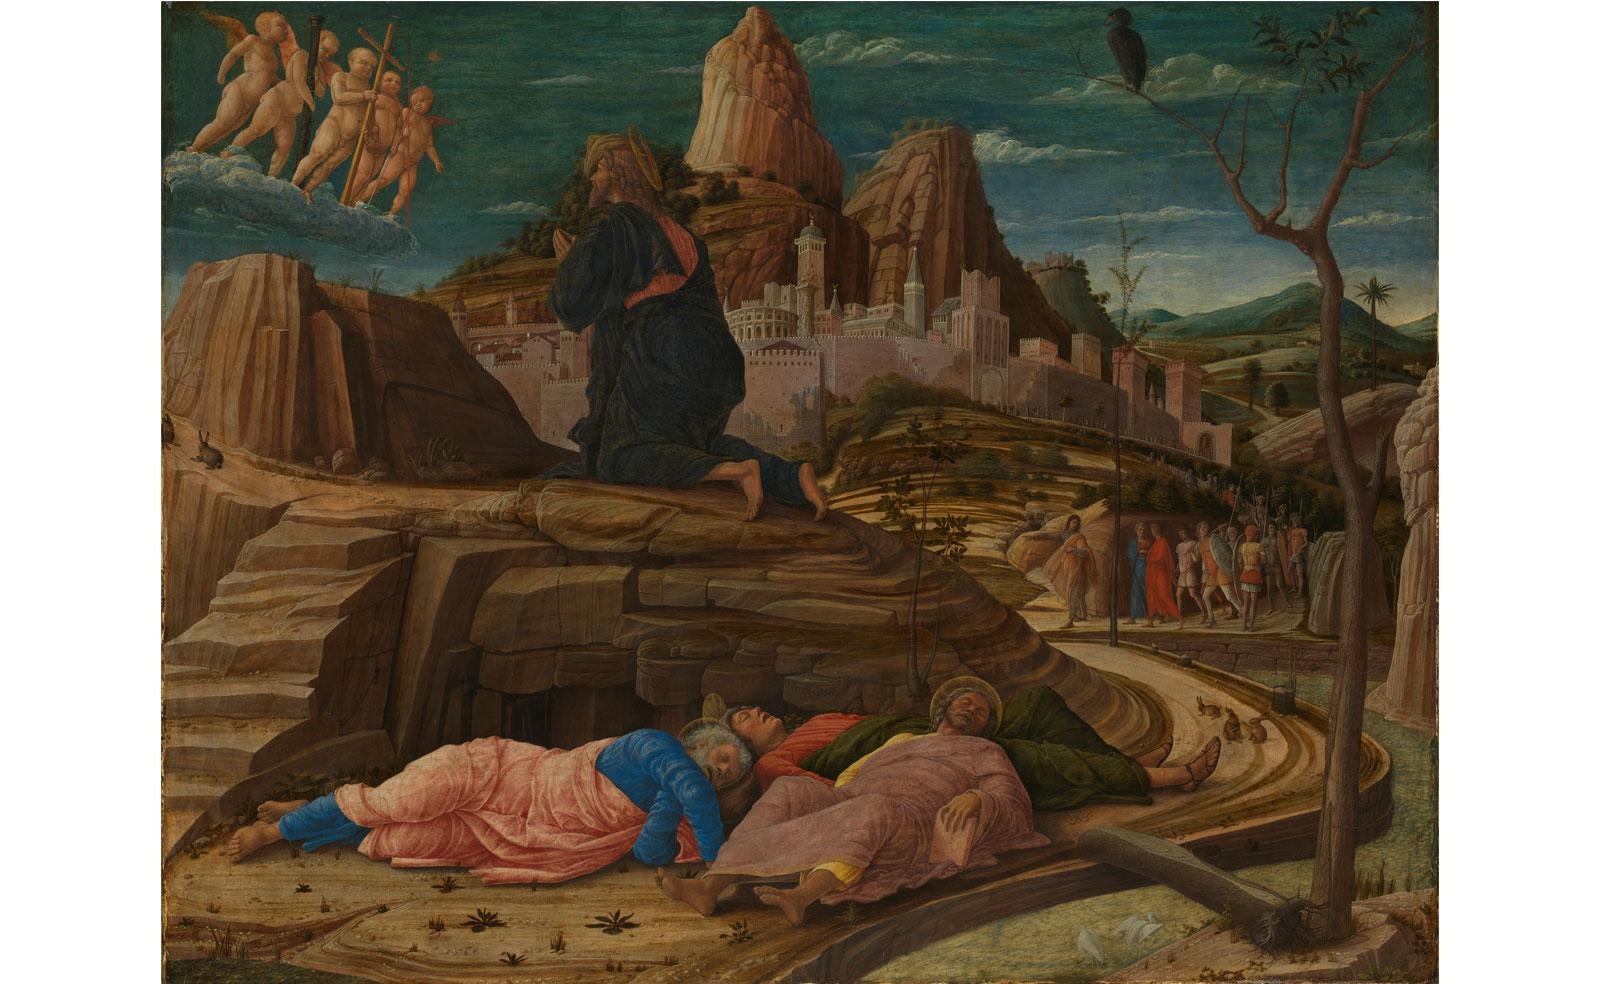 The Agony in the Garden by Andrea Mantegna.